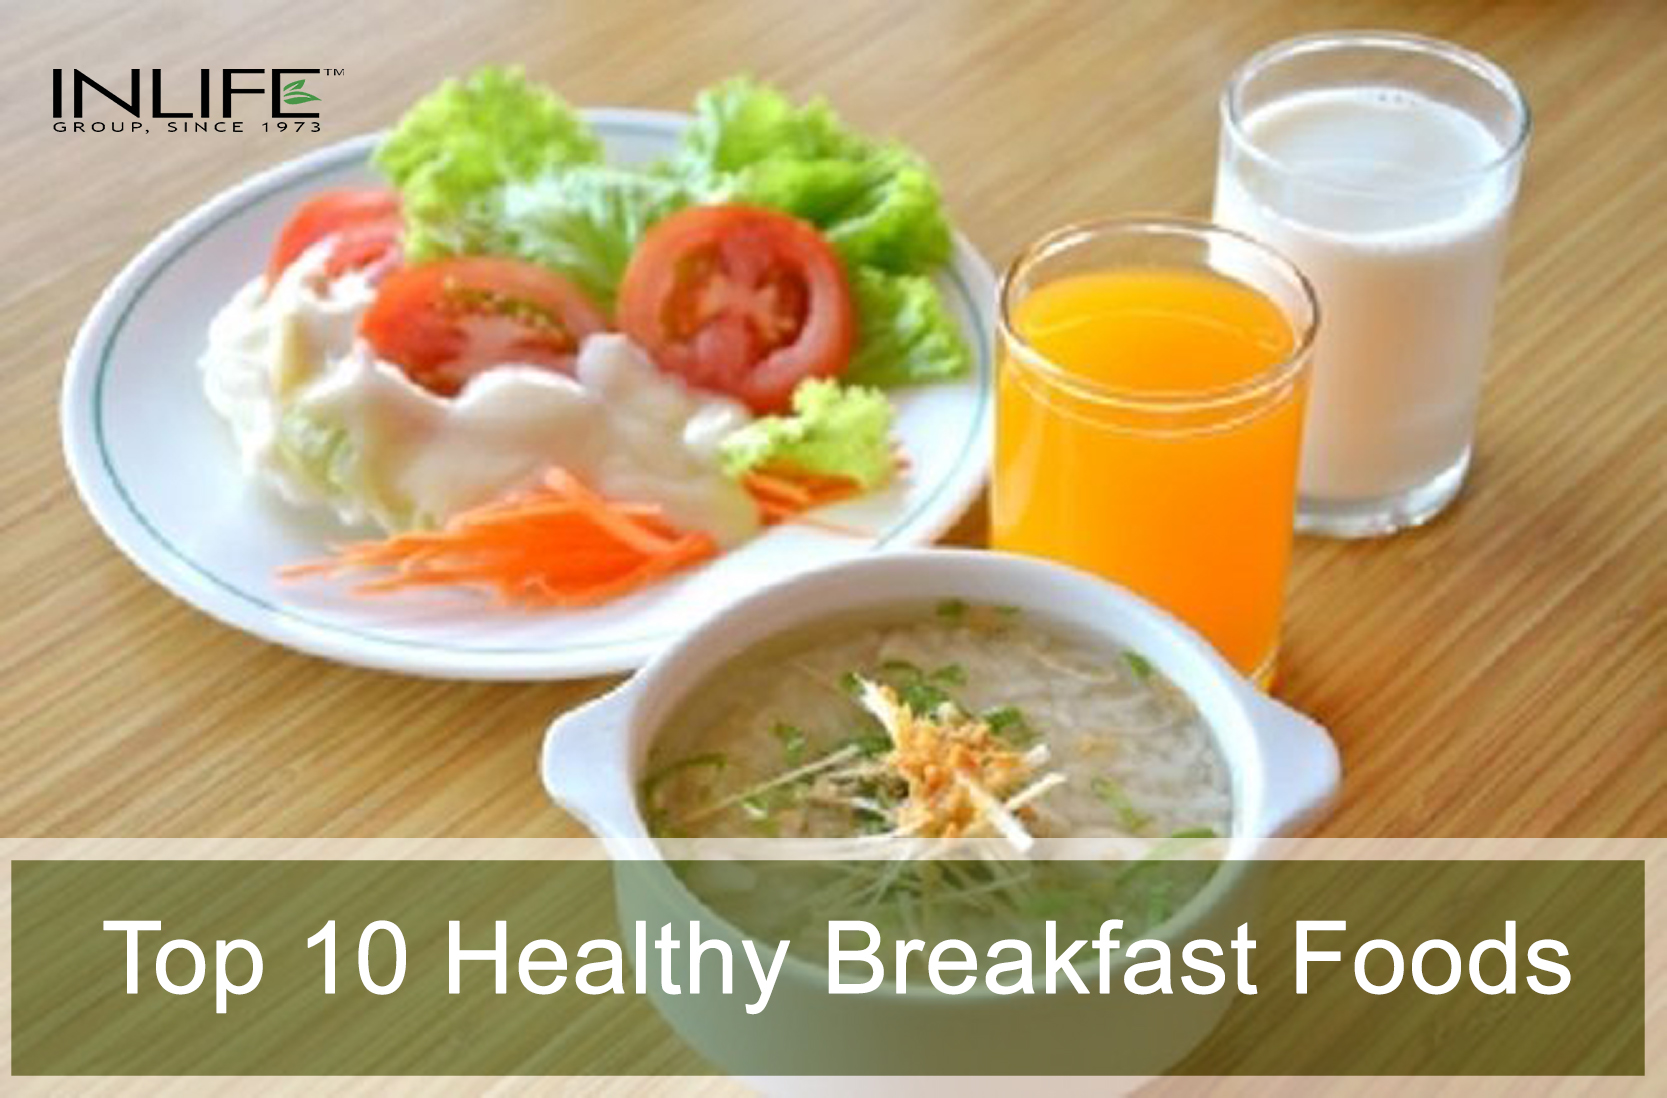 Top 10 Healthy Breakfast Foods To Eat